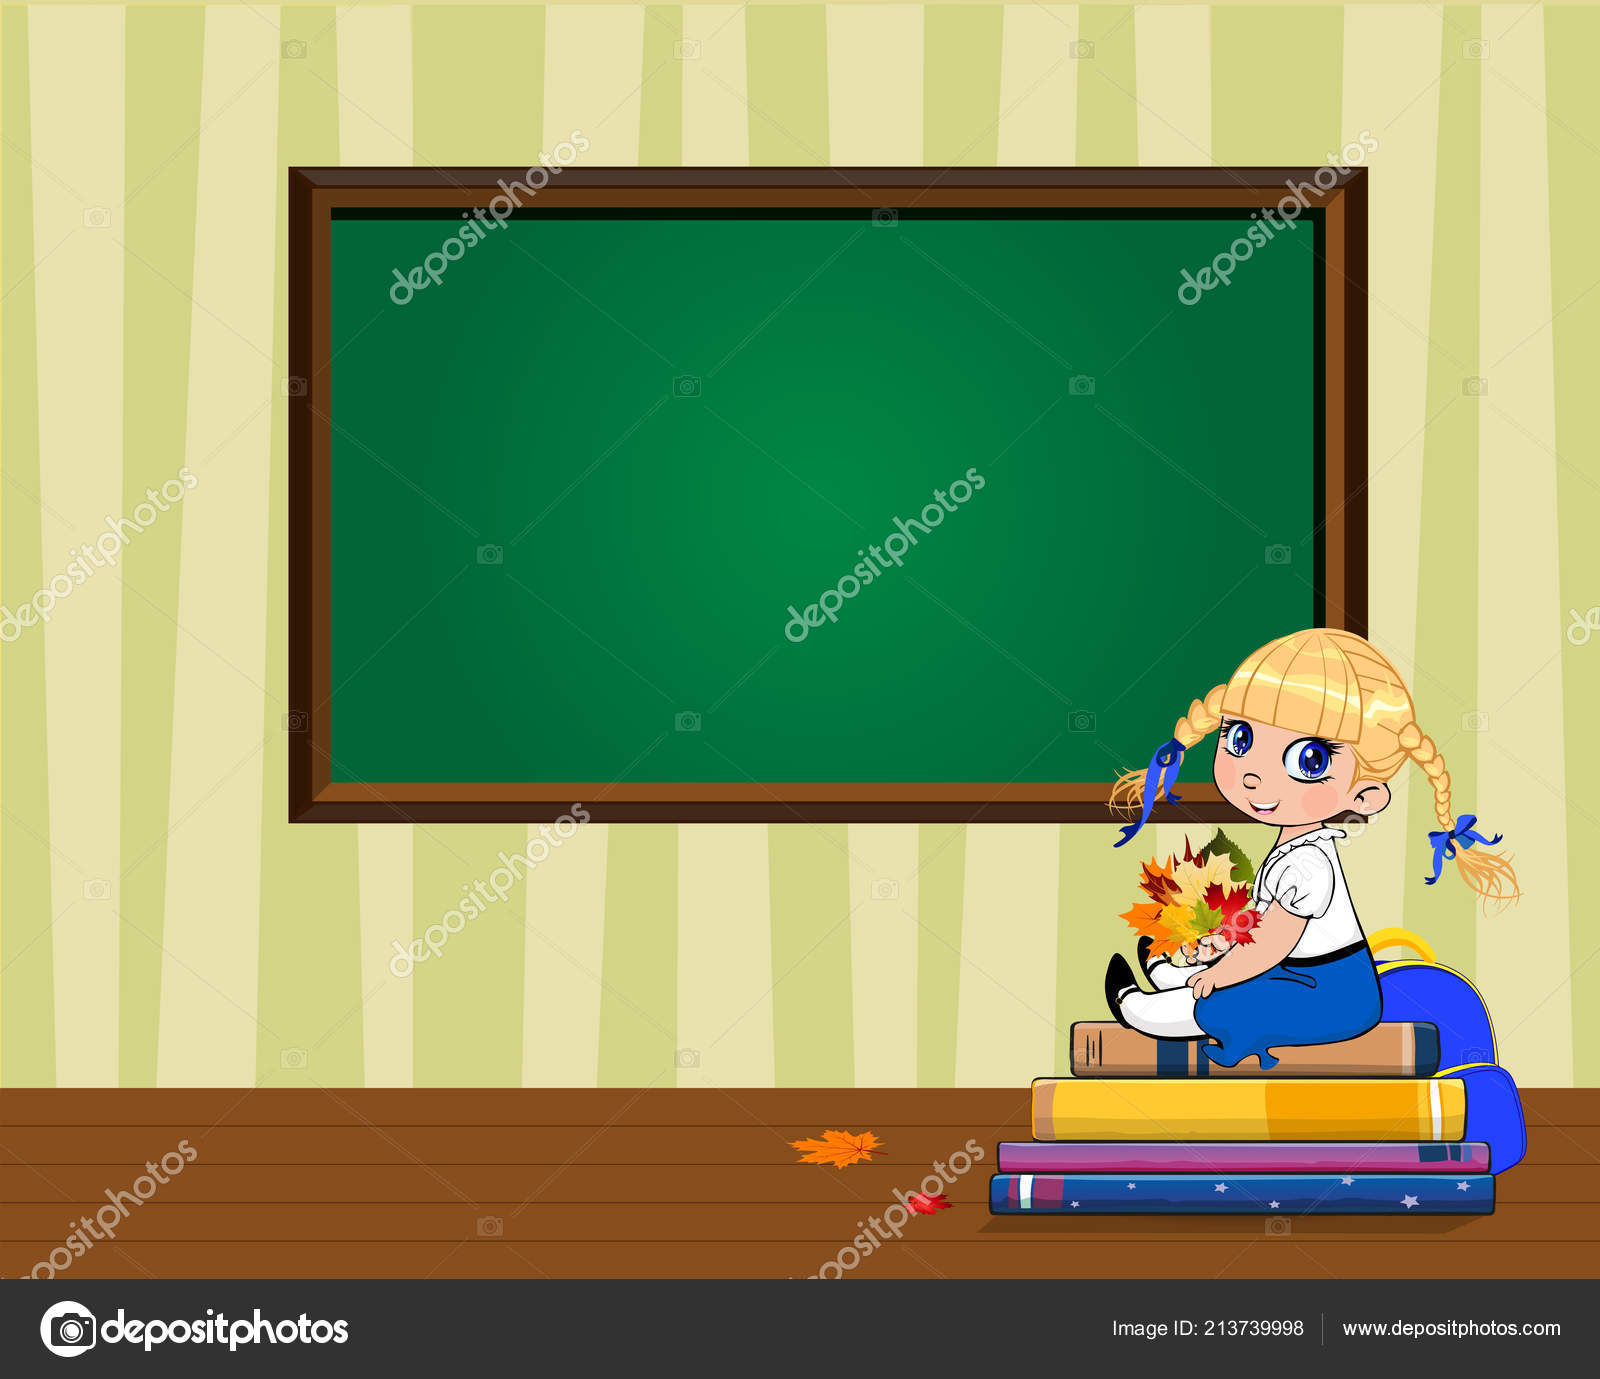 Cute Cartoon School Girl Sitting Books Pile Bouquet Autumn